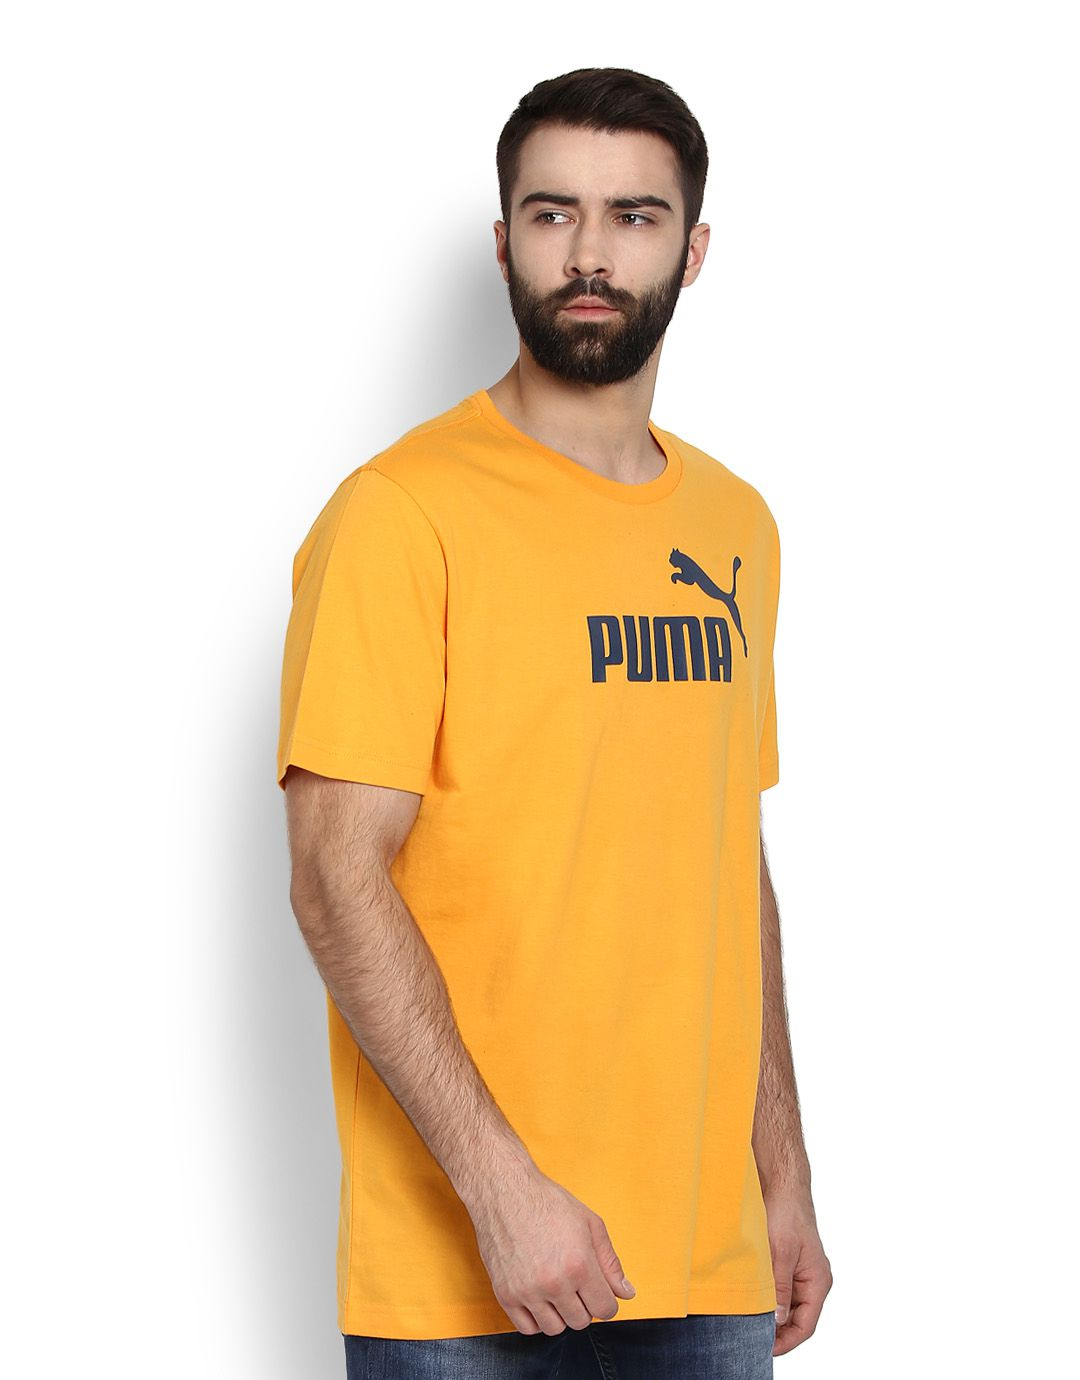 Puma Yellow T-Shirt